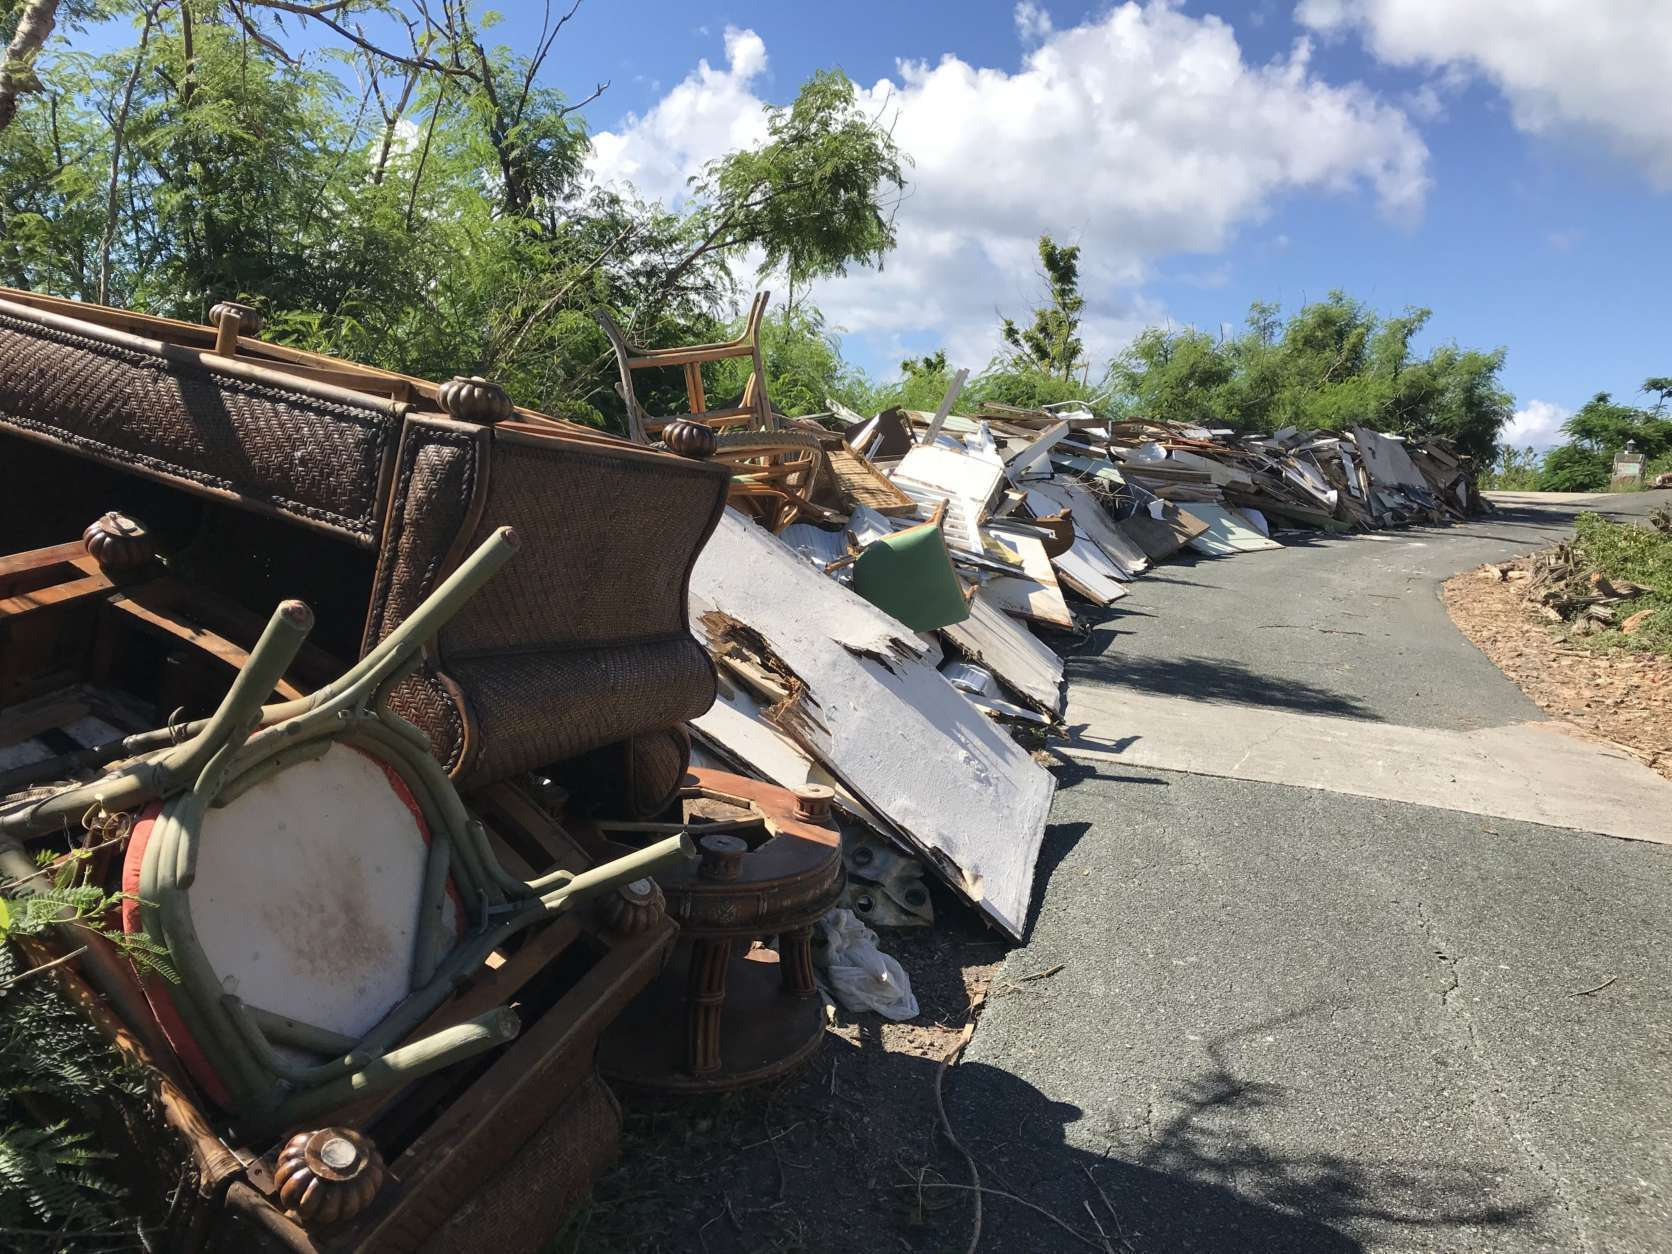 Debris neatly lines the streets in Great Cruz Bay for blocks on end. (WTOP/Jeff Clabaugh)